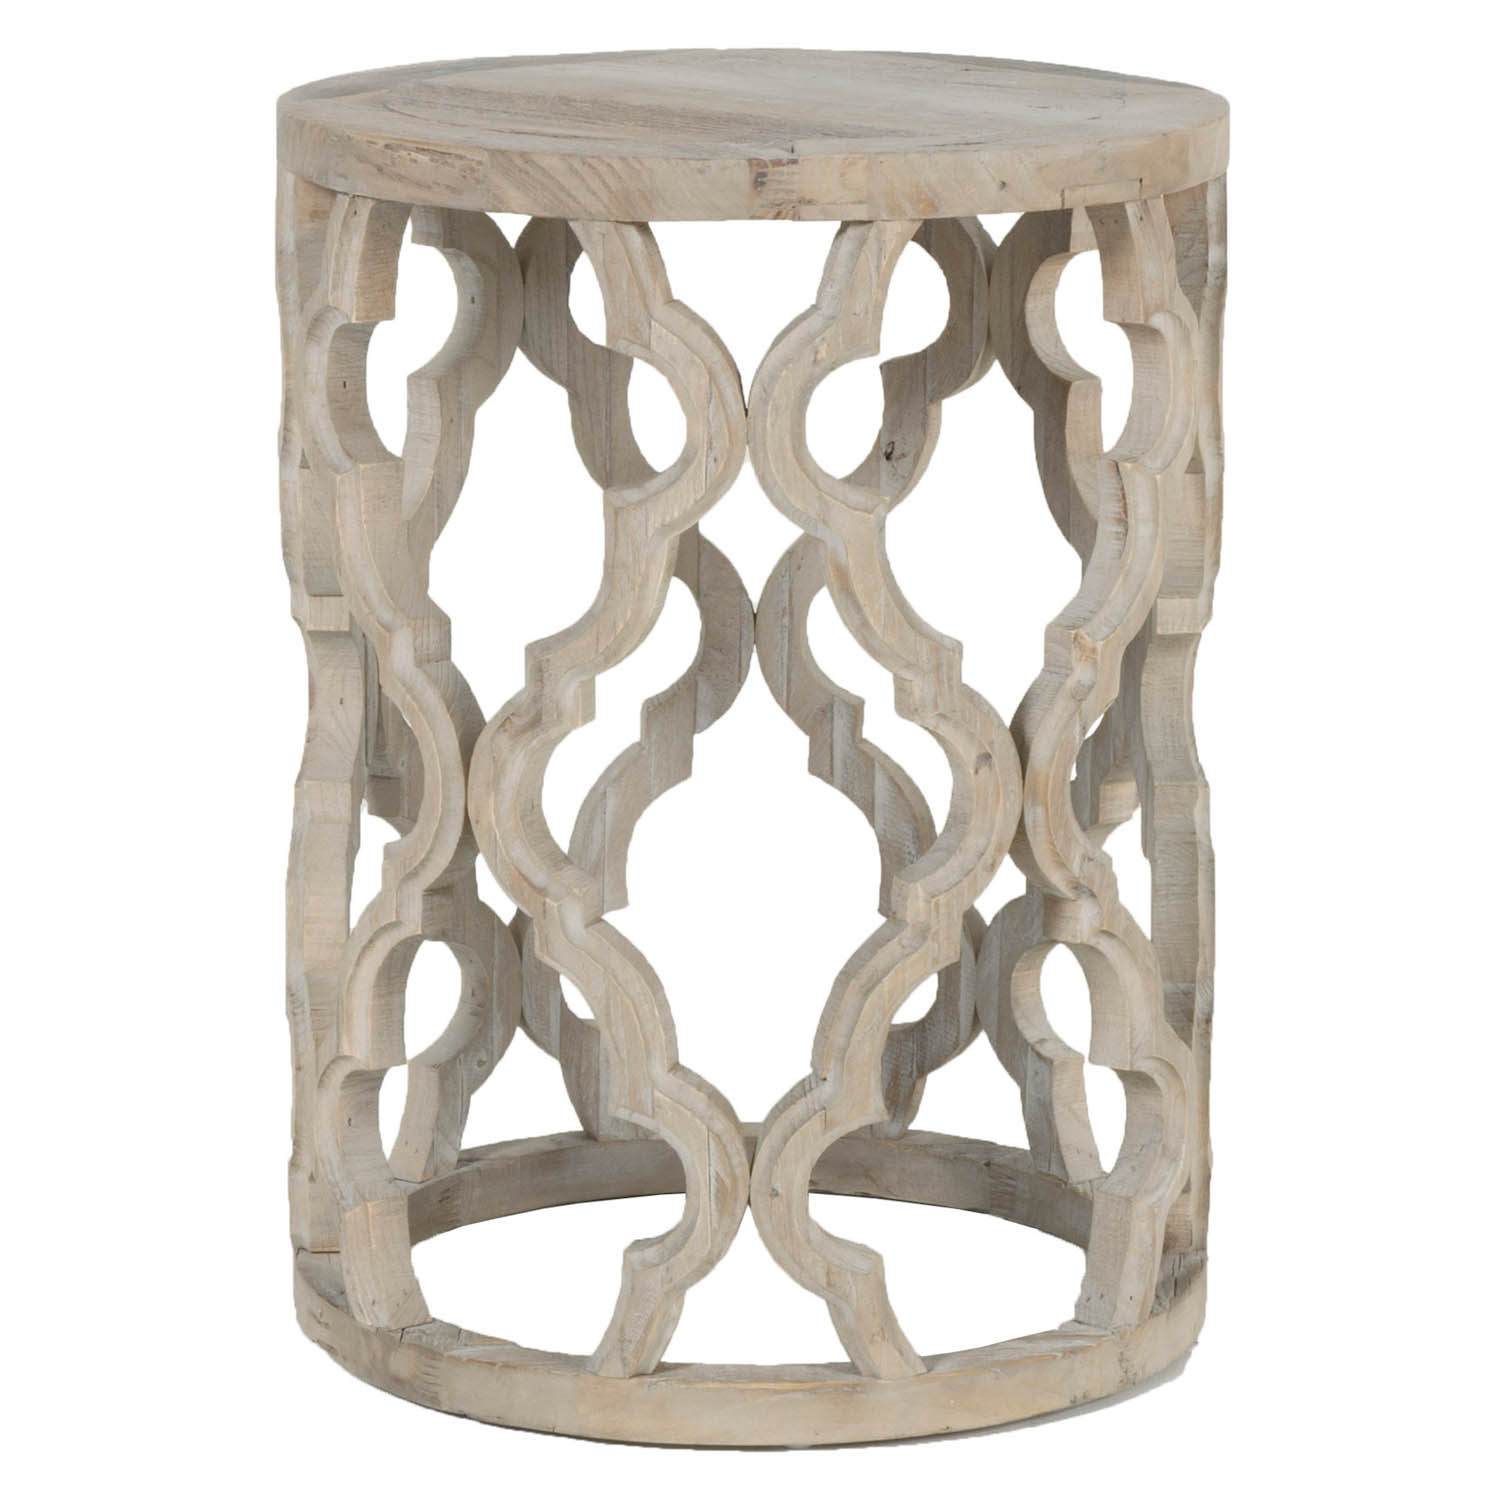 clover end table smoke gray unique accent tables diy farmhouse and bench tree stump vise screw doskocil dog crate narrow glass console cooling gel mattress topper outdoor wicker